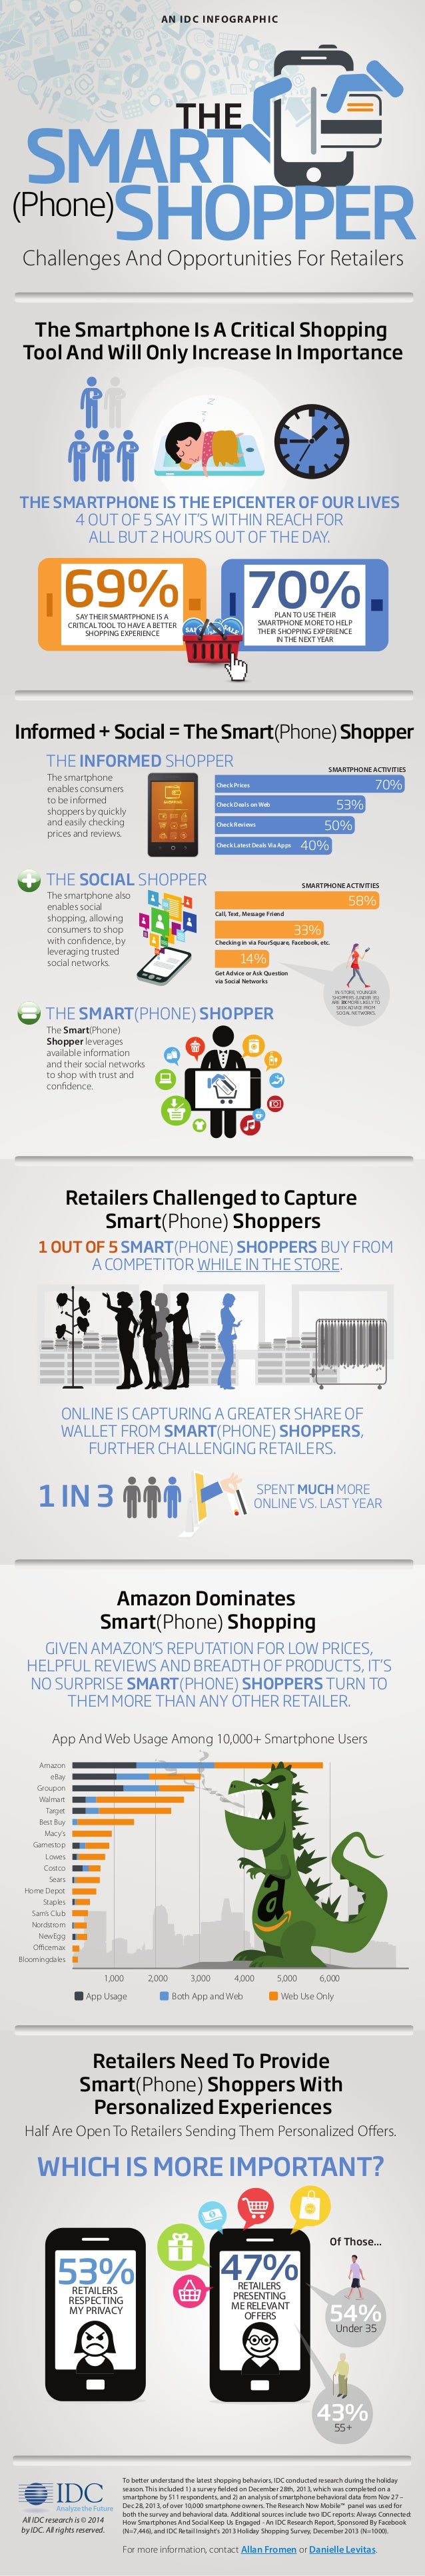 App And Web Usage Among 10,000+ Smartphone Users 1,000 2,000 3,000 4,000 5,000 6,000 Amazon eBay Groupon Walmart Target Be...